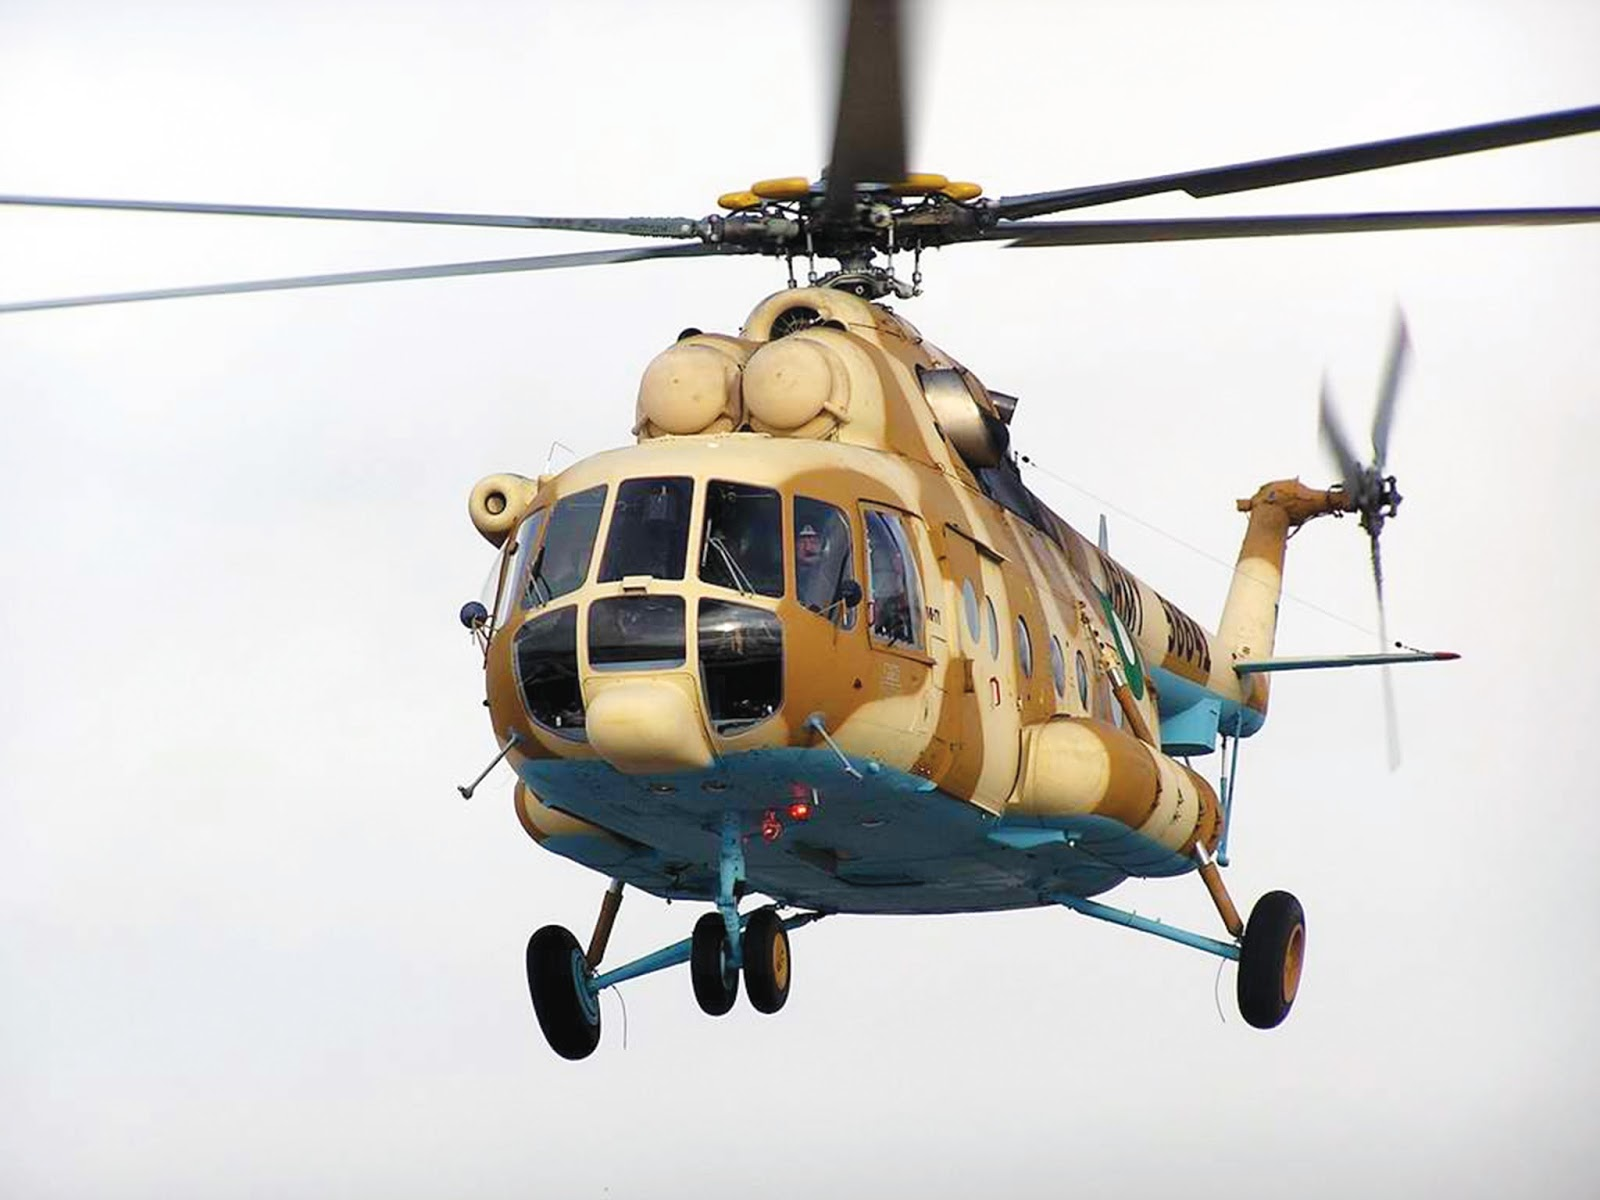 2015 Pakistan Army Mil Mi-17 crash